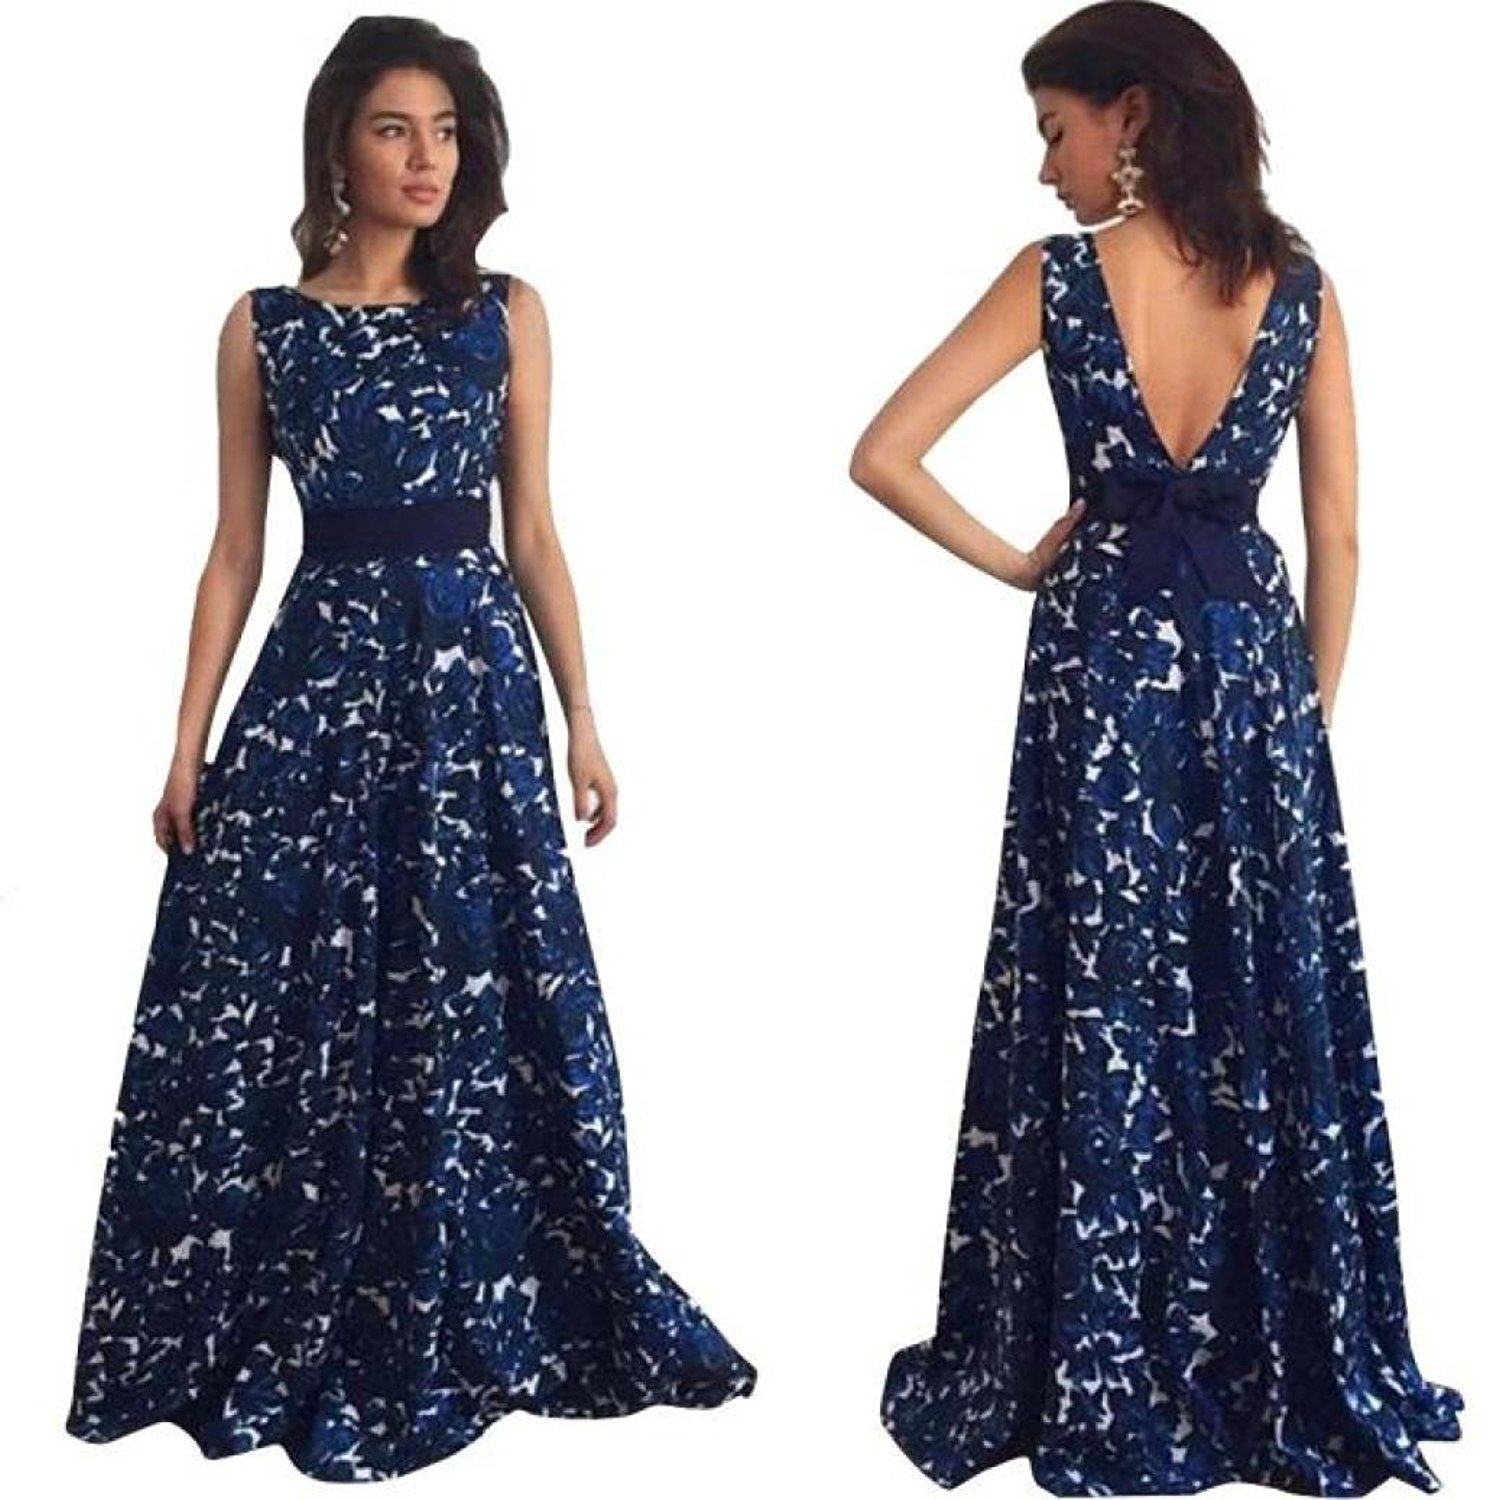 994b068c4a Get Quotations · Maxi Dress,Sexy Women Floral V Back Long Formal Prom Dress  Party Ball Gown Evening